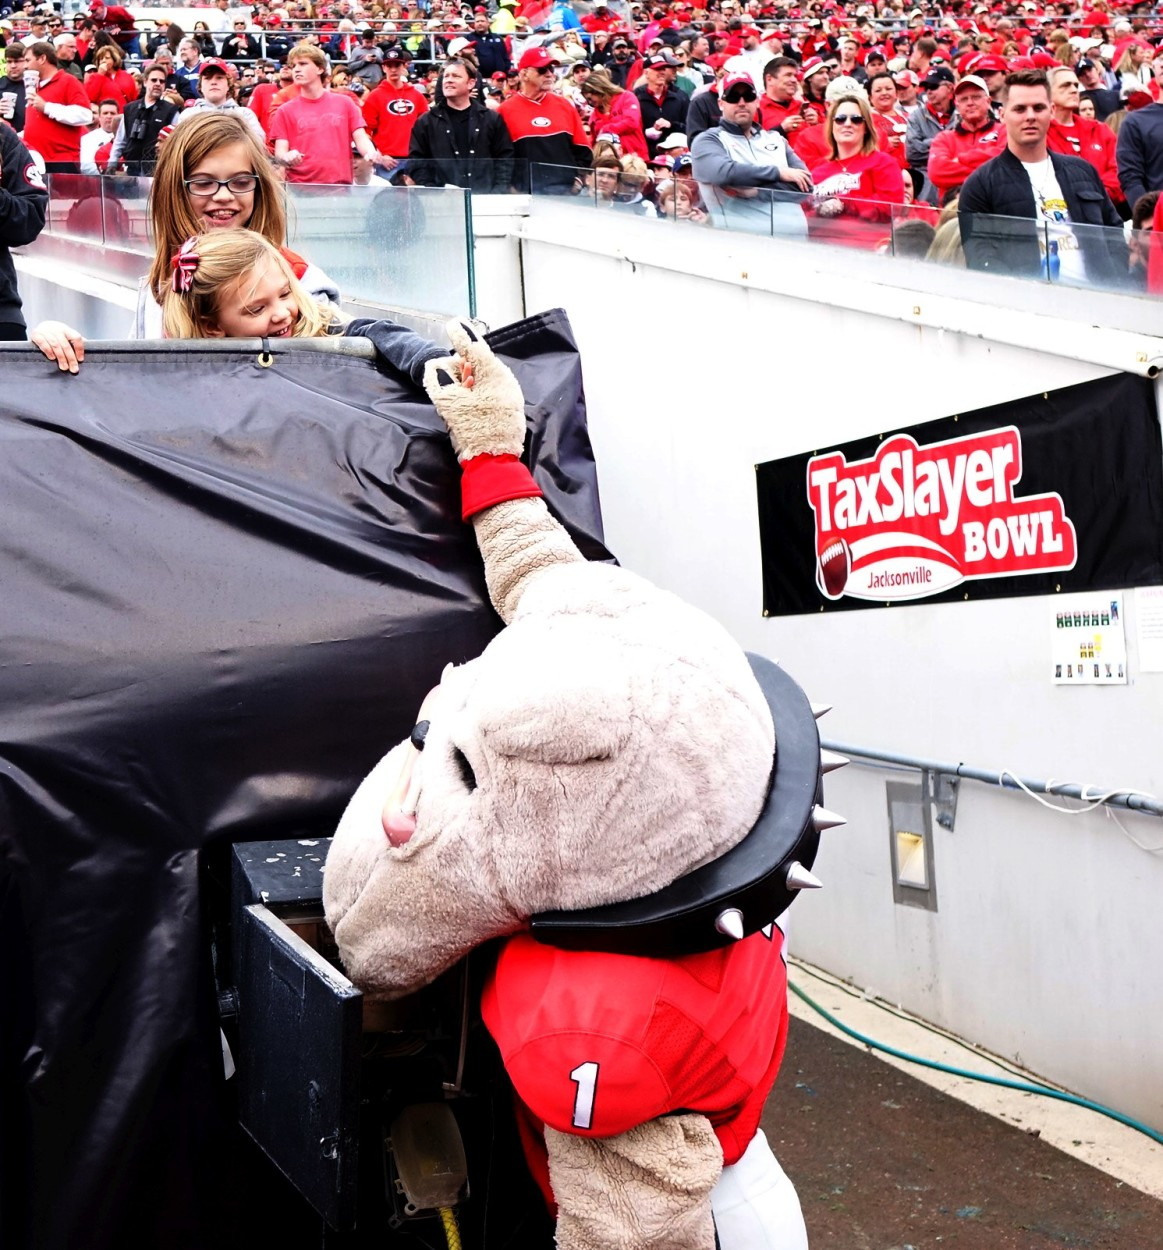 Hairy Dawg and some young Georgia pups -TaxSlayer Bowl - 02-JAN-2015 (Photo by Greg Poole/Bulldawg Illsutrated)